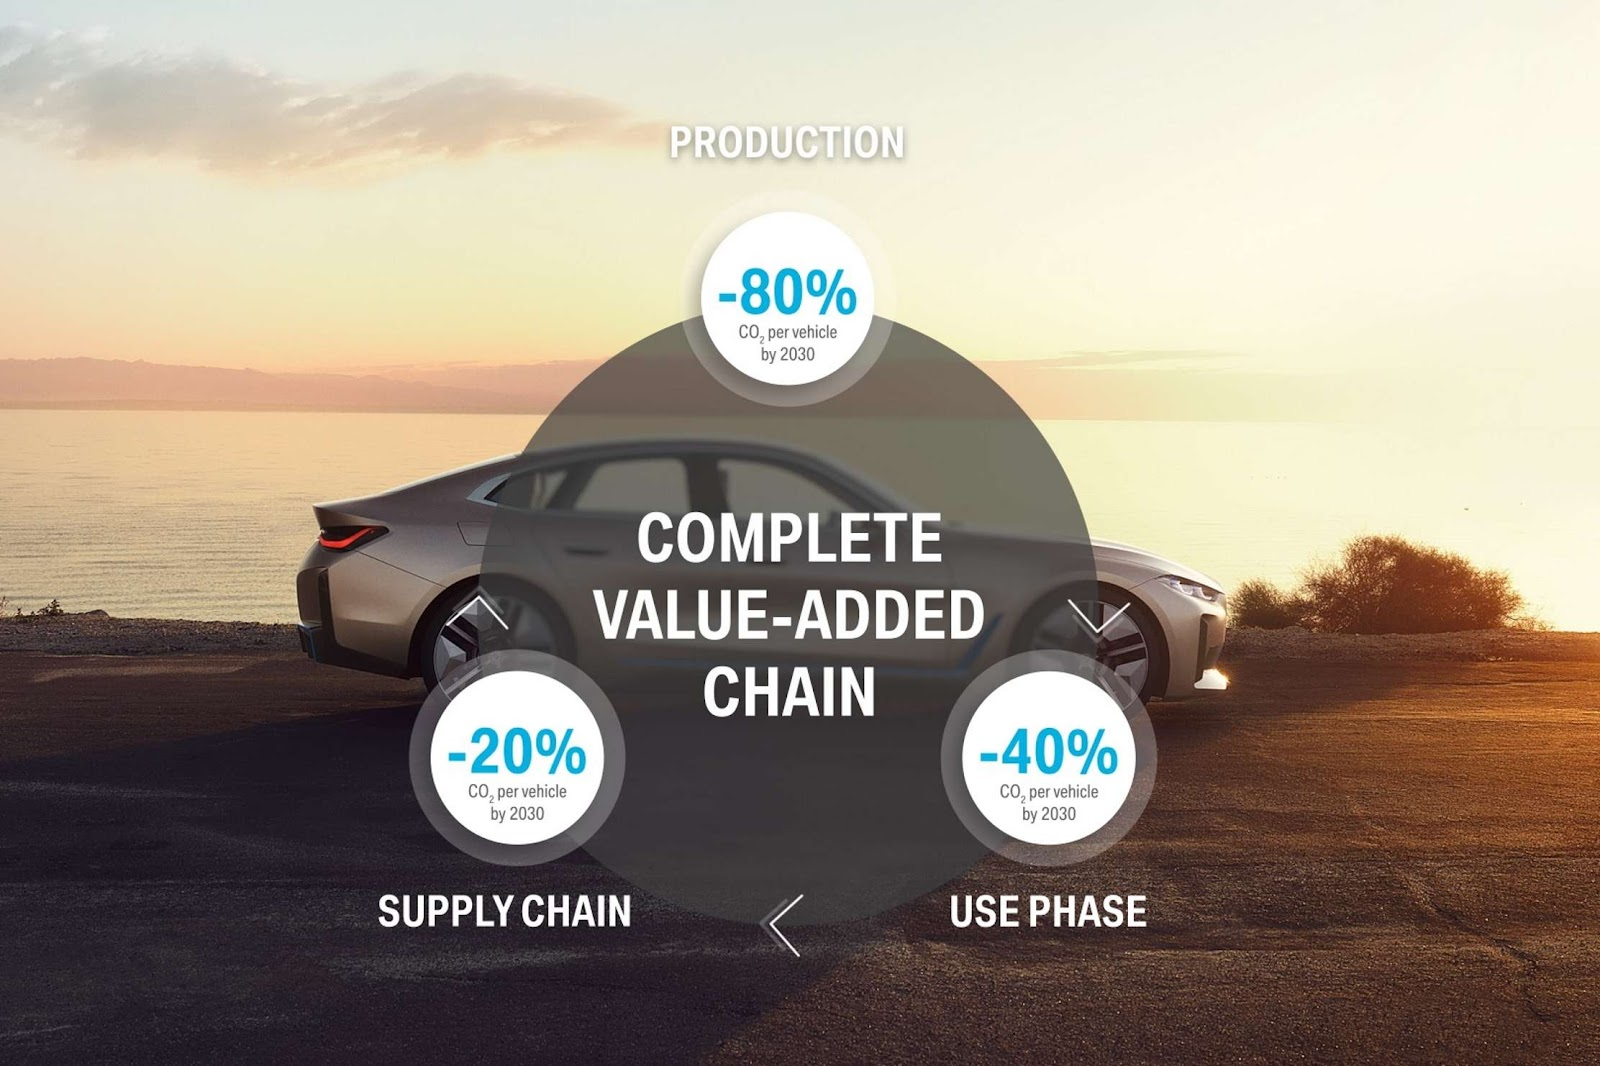 CO2 Reduction - BMW